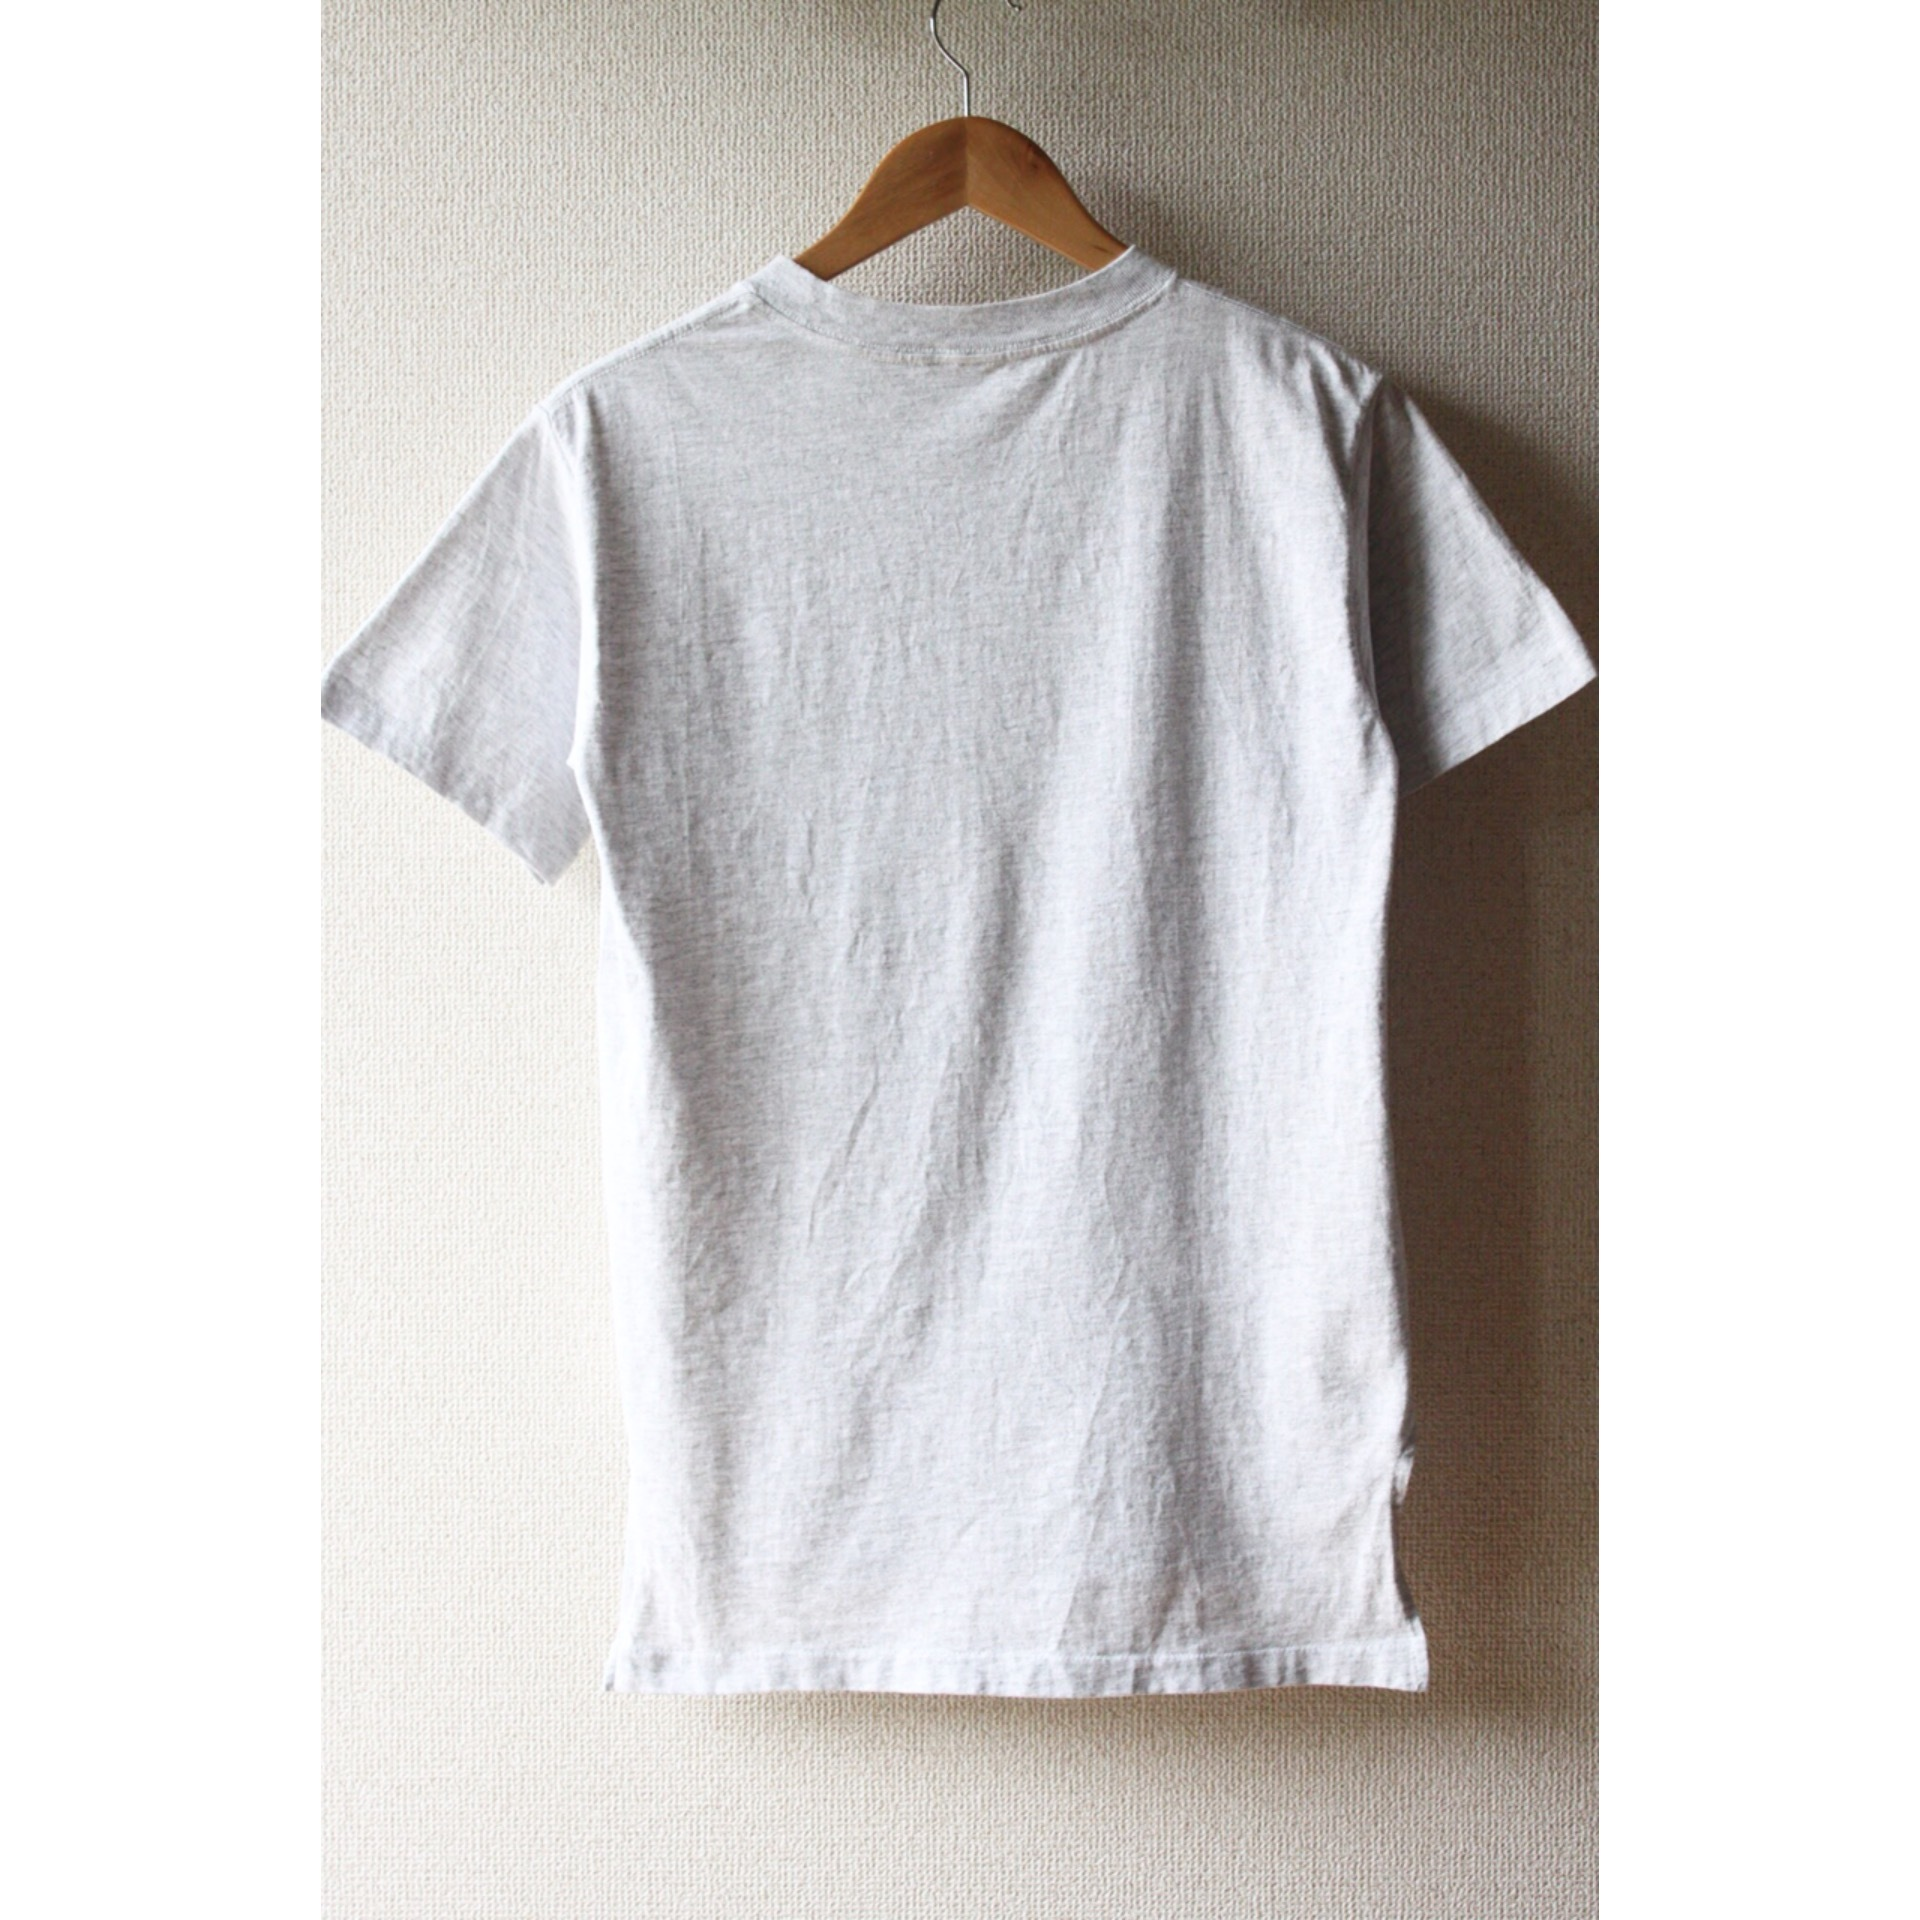 Vintage pocket t shirt